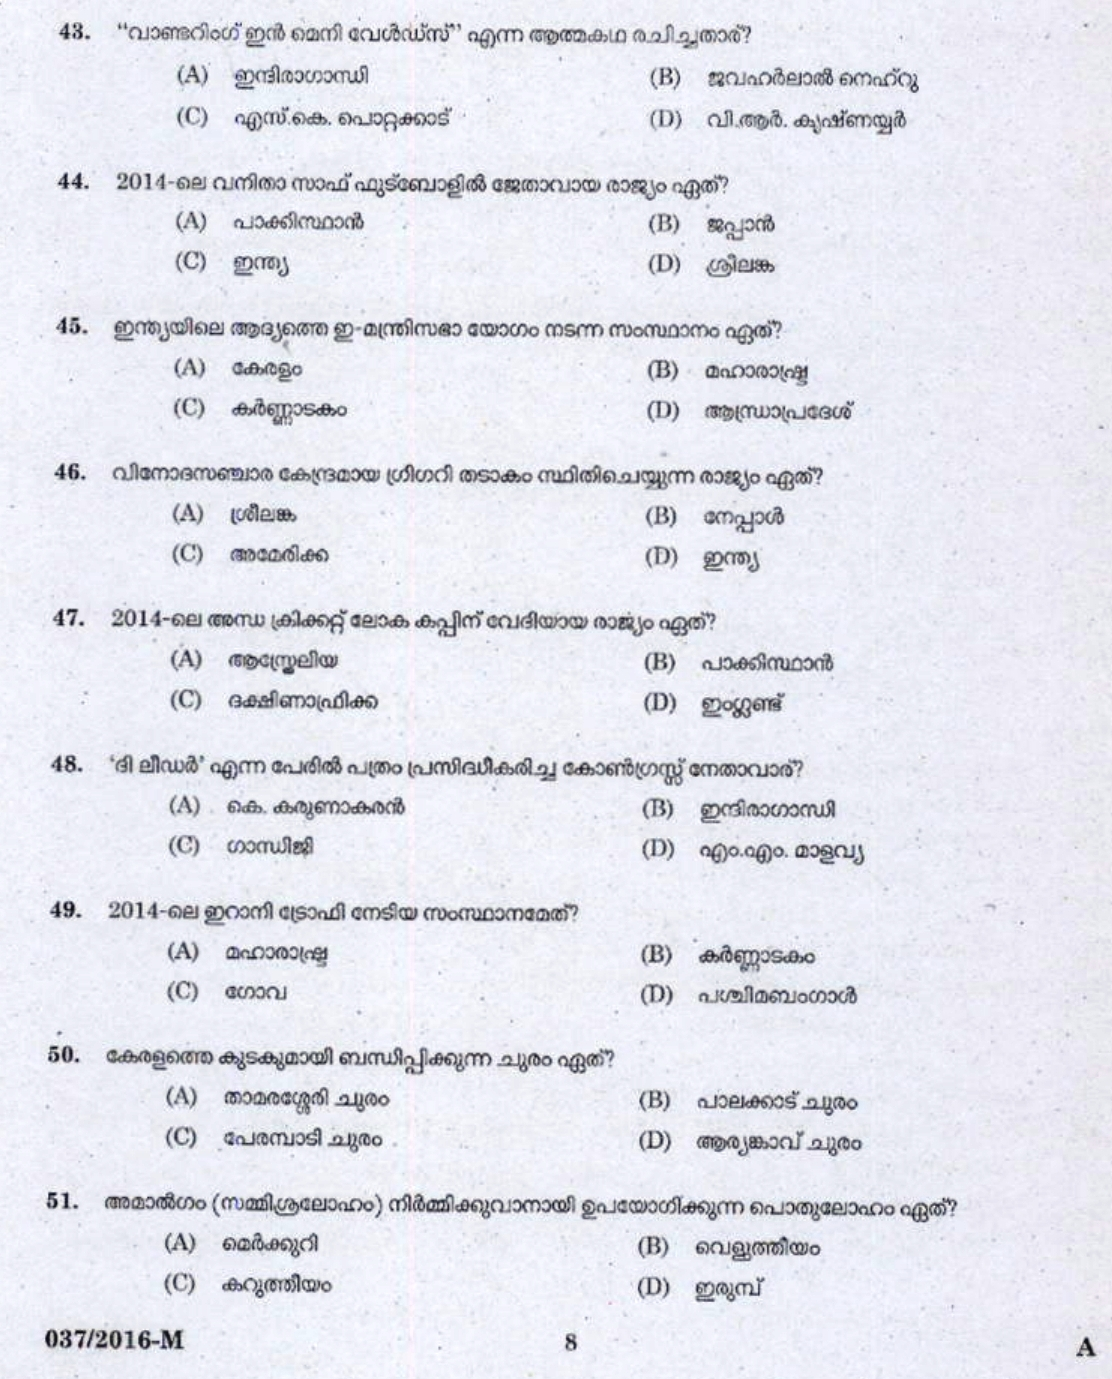 Store Issuer Grade II (36/2016) Question Paper with Answer Key - Kerala PSC